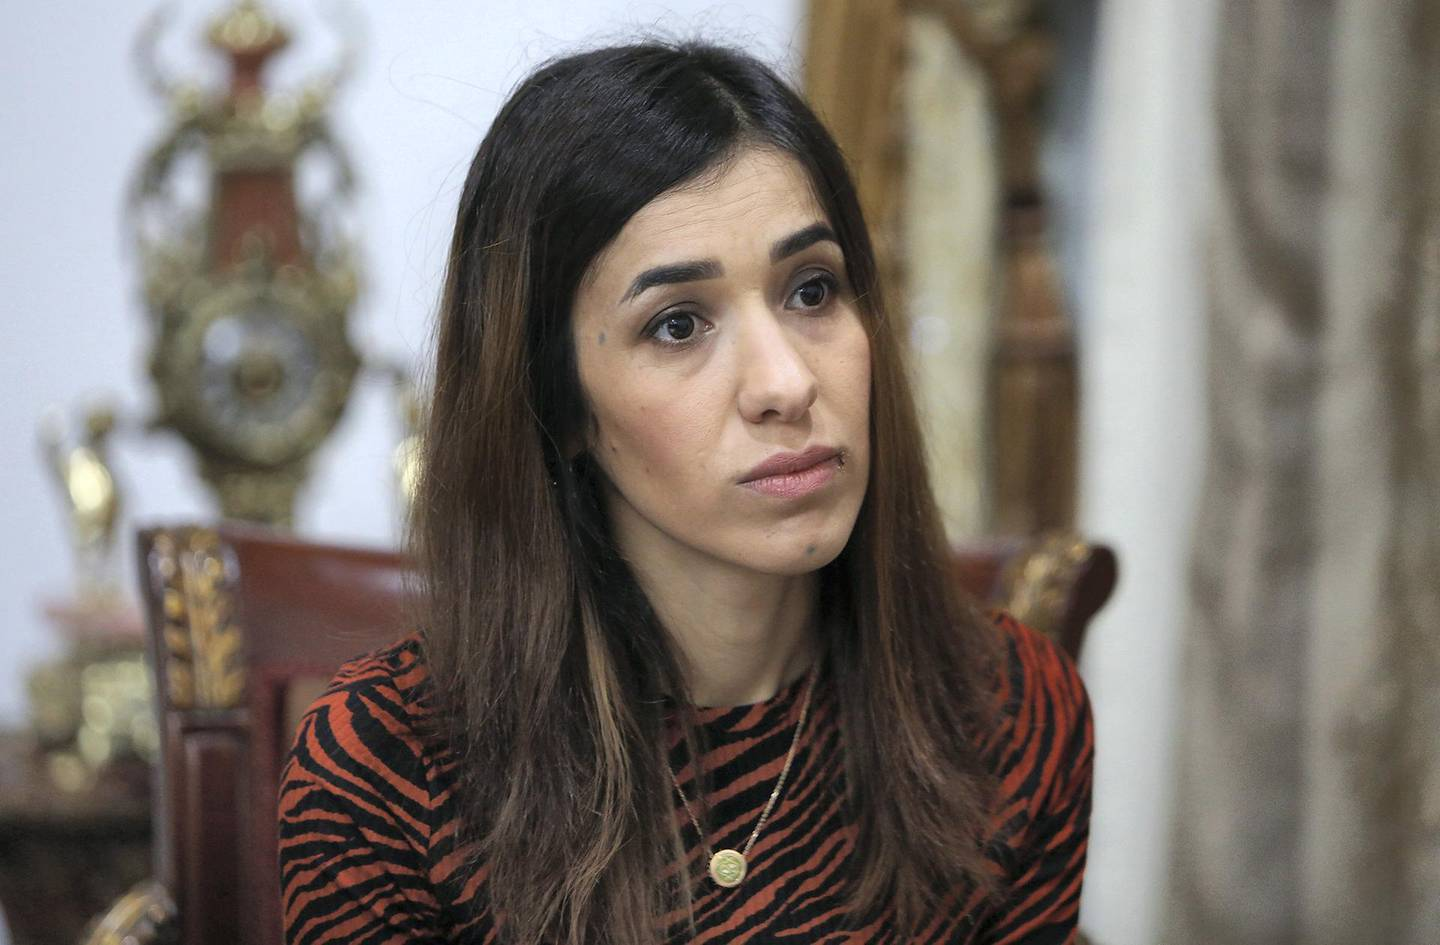 Iraqi Nobel laureate Nadia Murad gestures during a meeting with Iraq's president on December 12, 2018 in Baghdad. - Murad survived the worst of the cruelties and brutality inflicted on her people, the Yazidis of Iraq, by the Islamic State group before becoming a global champion of their cause and a Nobel Peace Prize laureate. (Photo by SABAH ARAR / AFP)